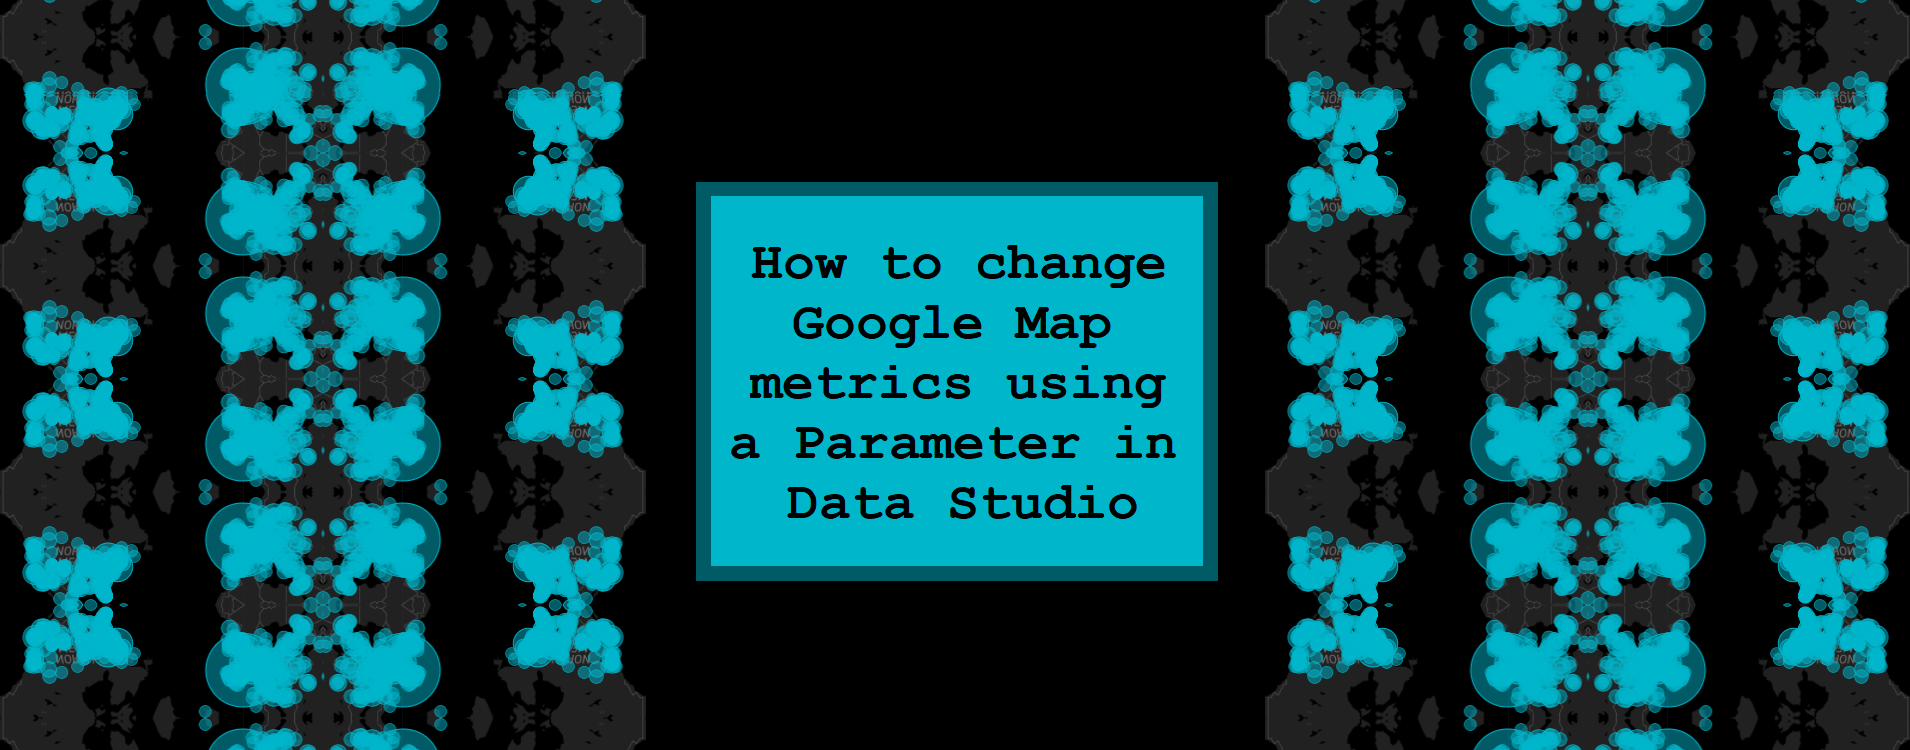 How to change Google Map metrics using a Parameter in Data Studio